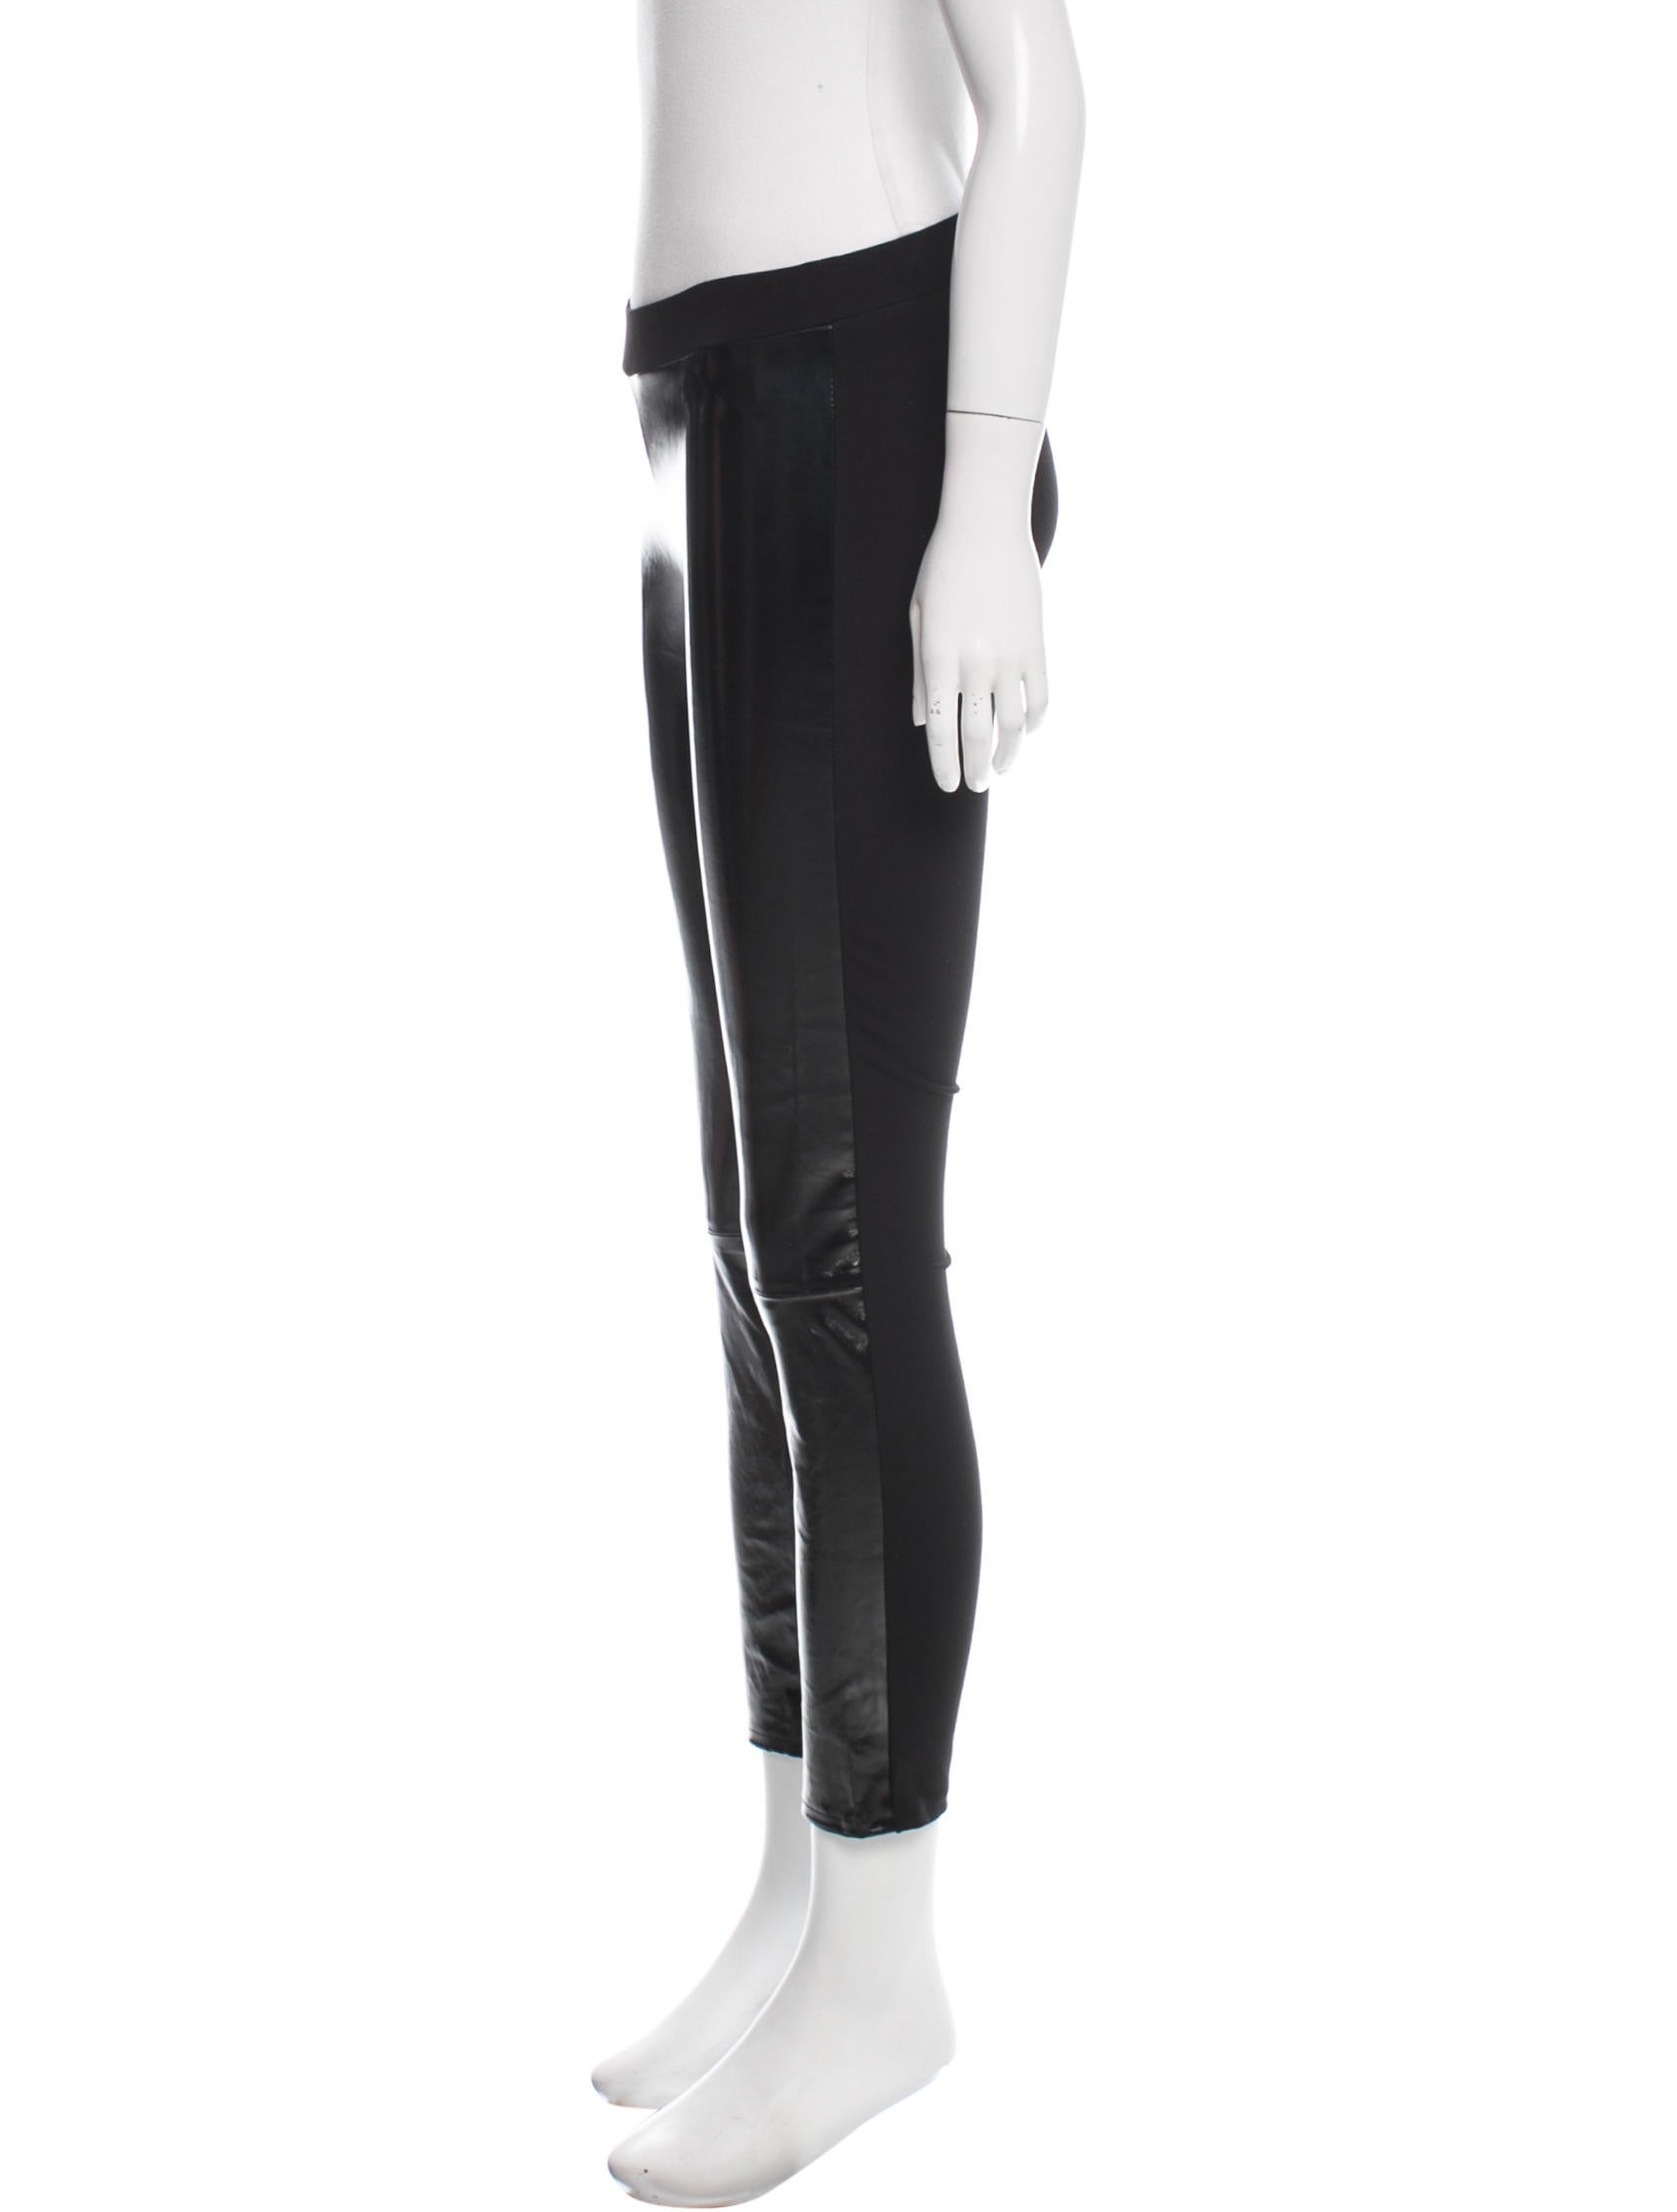 Men's Low Rise Leggings Long Johns Bottoms Thermal Pant. from $ 15 99 Prime. 4 out of 5 stars 1. LinvMe. Women's Low Rise Cropped Pants Trousers Capris $ 13 out of 5 stars 4. 90 Degree By Reflex – High Waist Tummy Control Shapewear – Power Flex Capri. from $ 16 99 Prime. out of 5 .